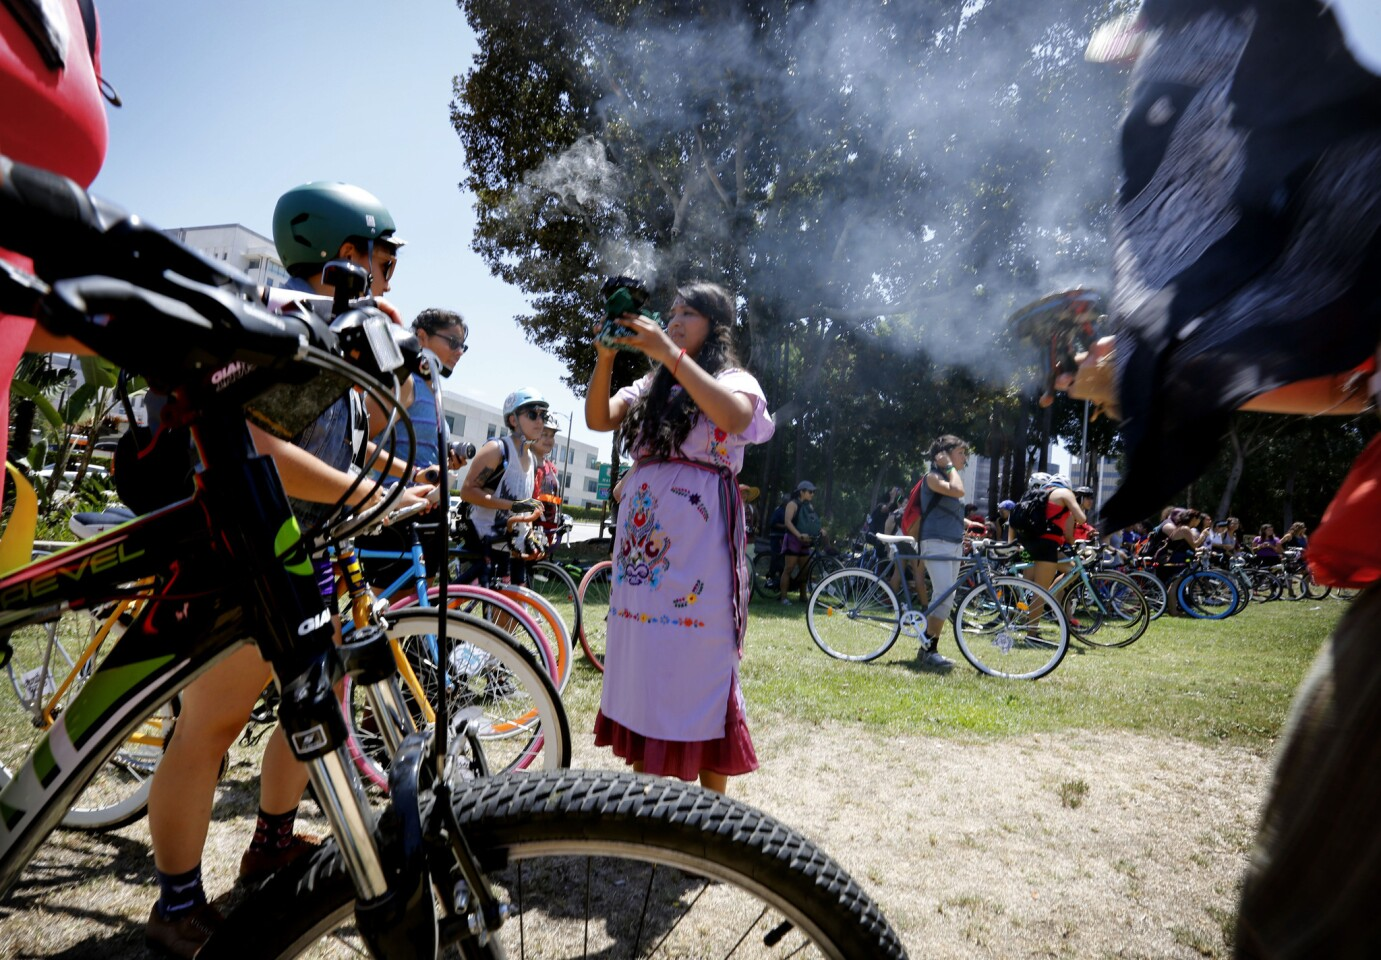 A blessing before the 30-mile ride begins. This was the third massive ride for the Ovarian Psycos Cycle Brigade, who are encouraging other women -- especially those who haven't been on a bike since they were in pigtails -- to pick up where their inner child left off.